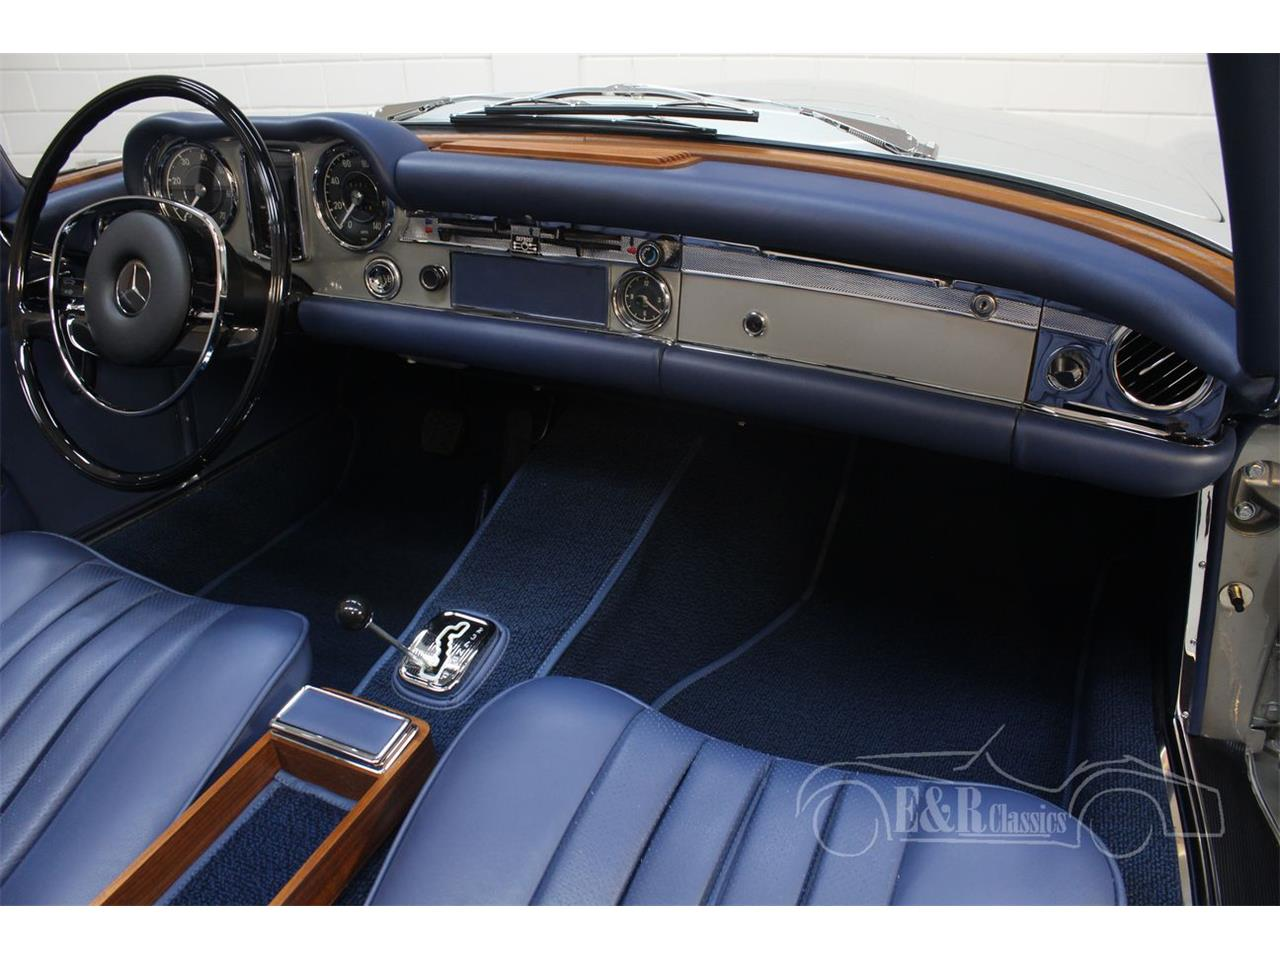 Large Picture of Classic '69 Mercedes-Benz 280SL located in Waalwijk noord brabant - $190,500.00 Offered by E & R Classics - Q9A0